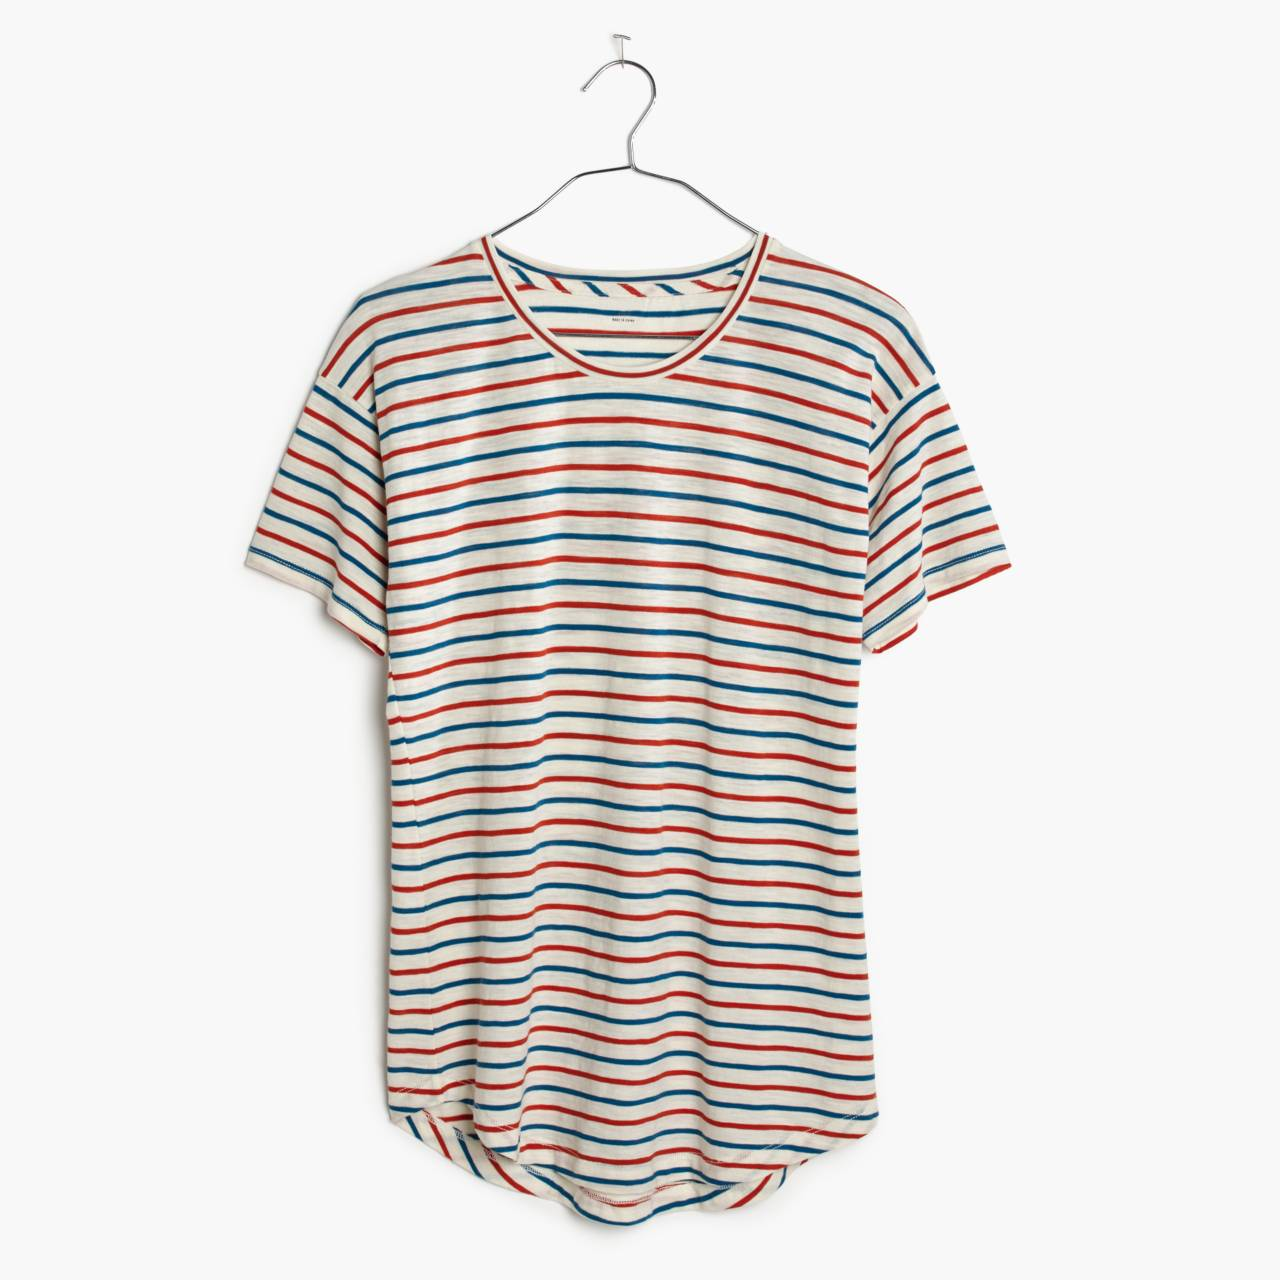 Whisper Cotton Crewneck Tee in Brion Stripe in bright ivory image 4